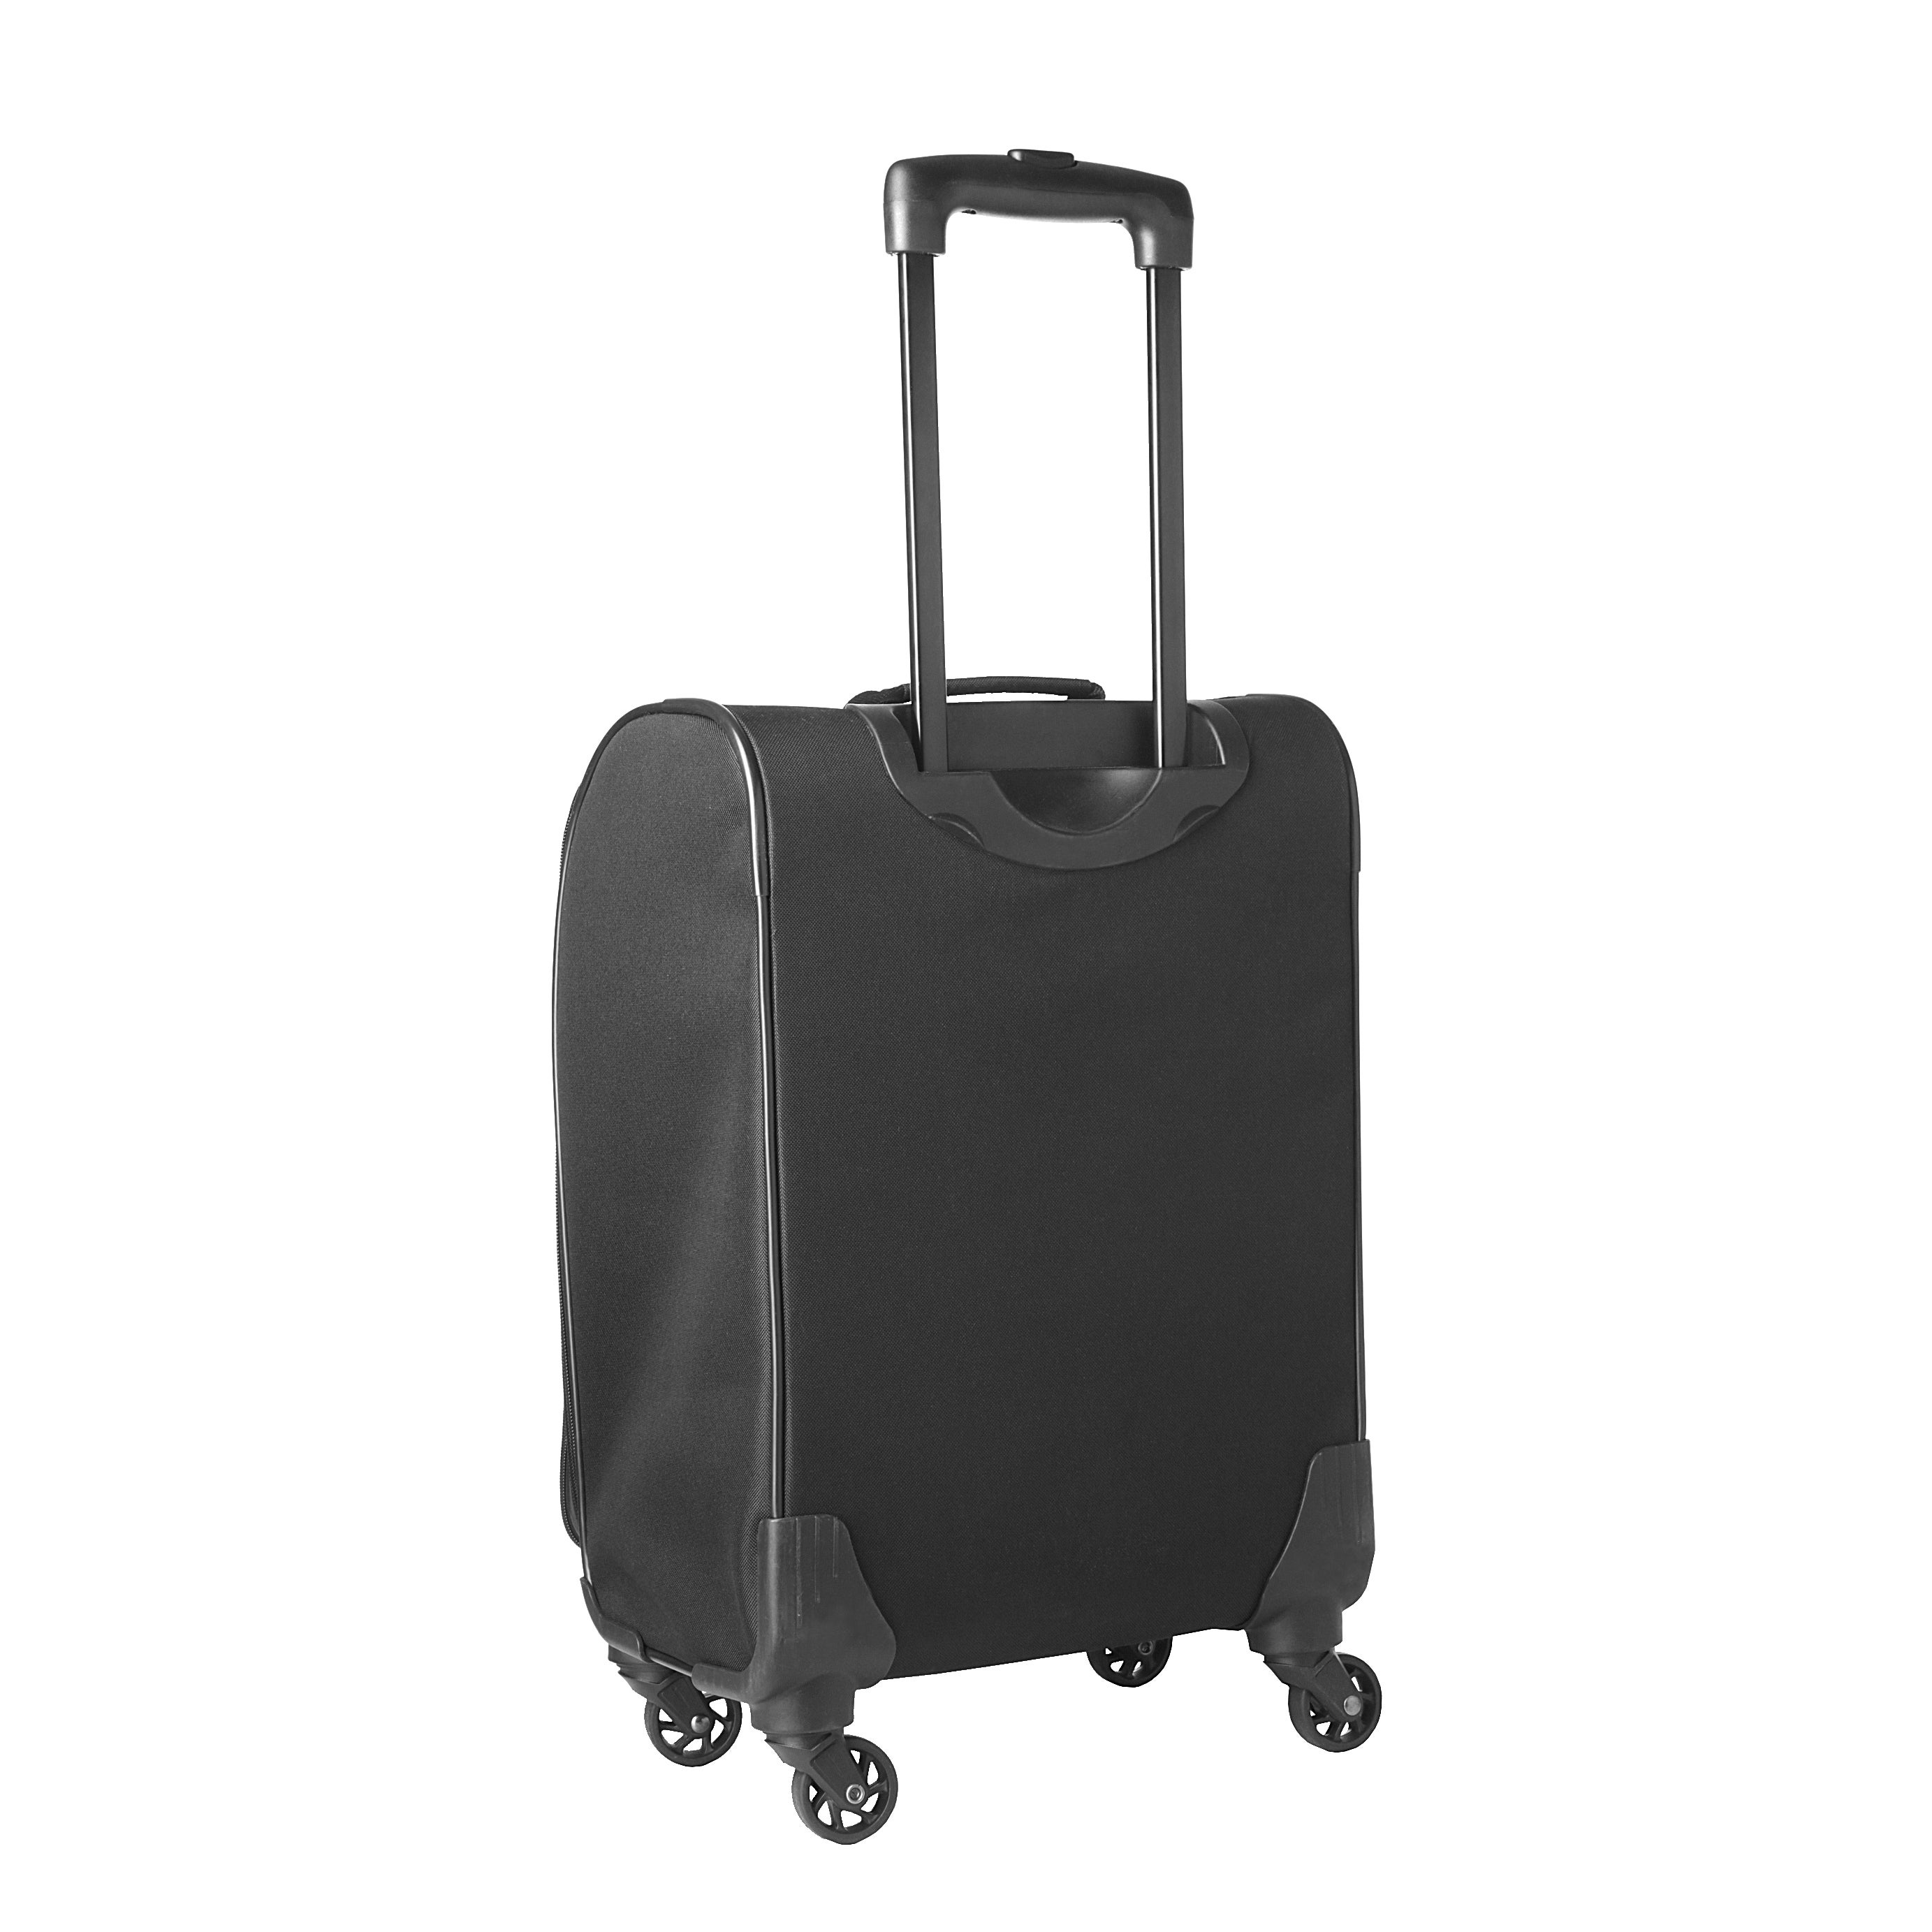 4c38dc51a7ea Shop Denco Sports Nimble 18-inch Chicago Cubs Carry-on Spinner Upright  Suitcase - Free Shipping Today - Overstock.com - 14418599